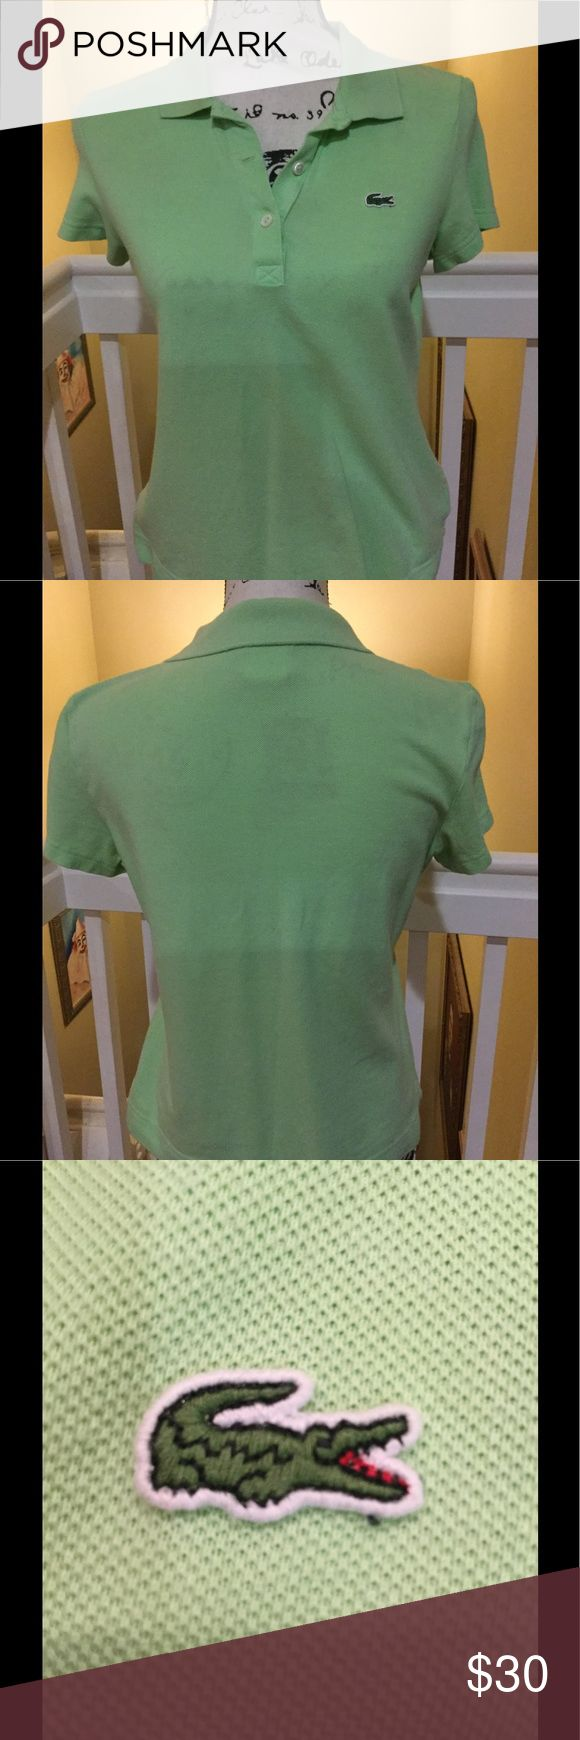 Woman Lacoste Polo Shirt Woman Lacoste Polo Shirt. Worn several times. Great condition. Lacoste Tops